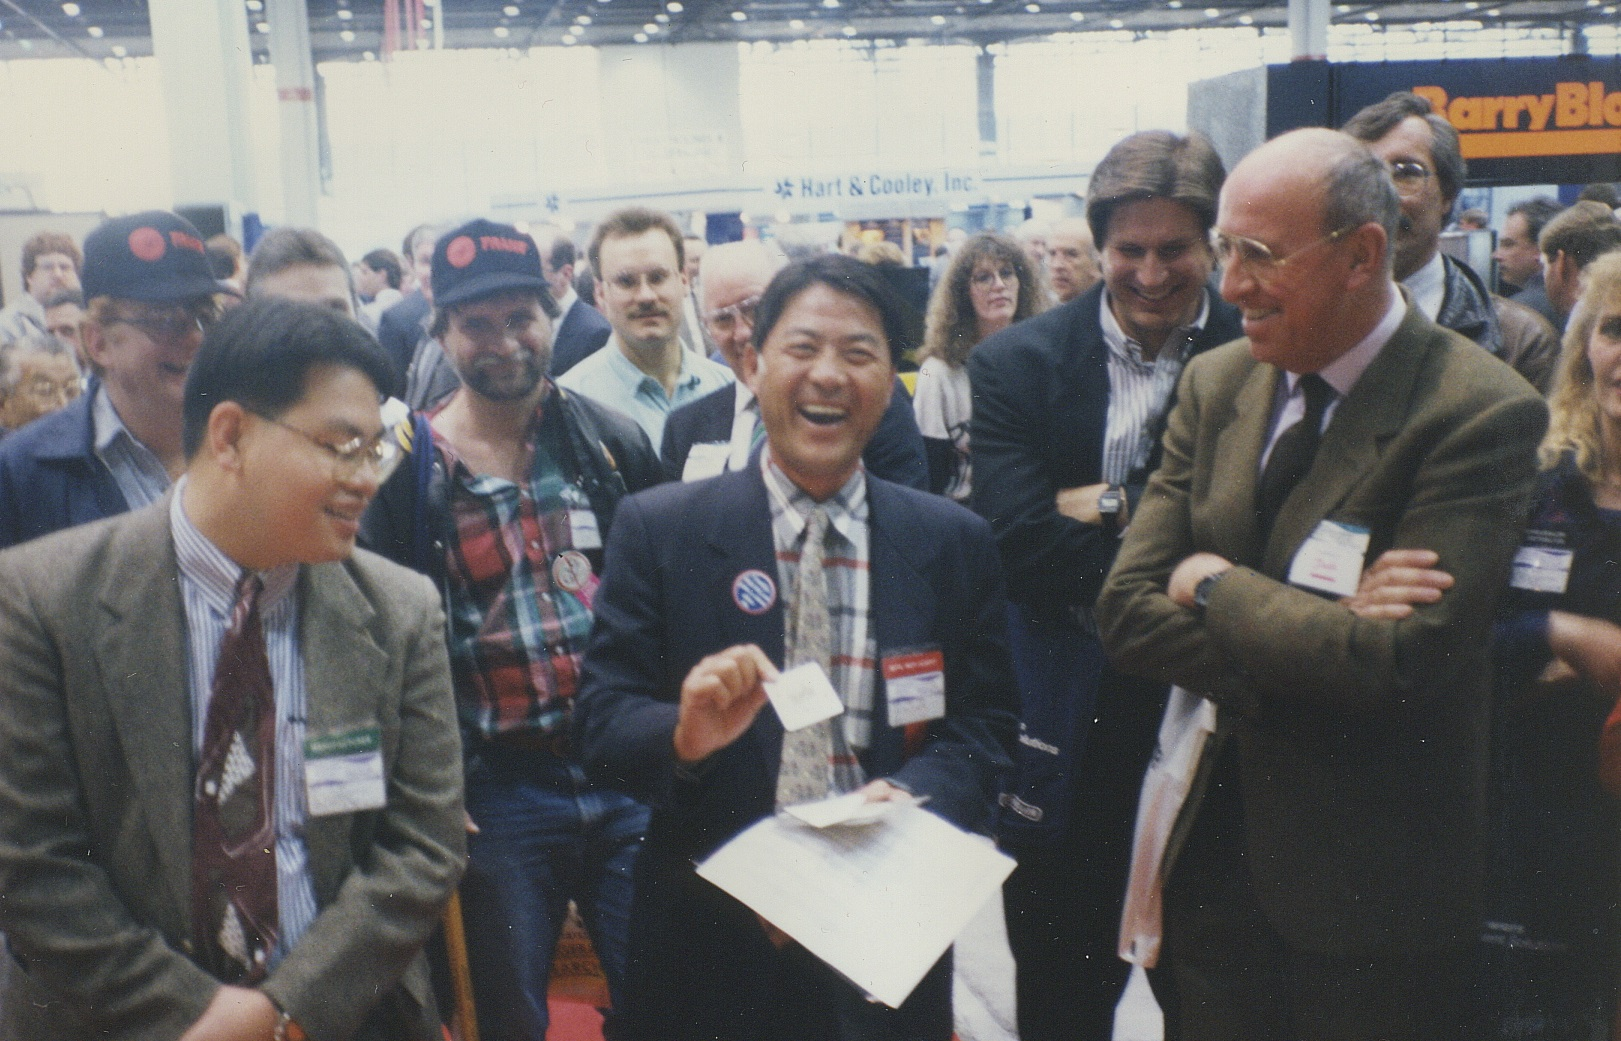 """The Amazing Hondo's view of happy faces on a busy trade show floor. """"The smarter the audience, the more fun to bamfoozle"""", says Hondo."""